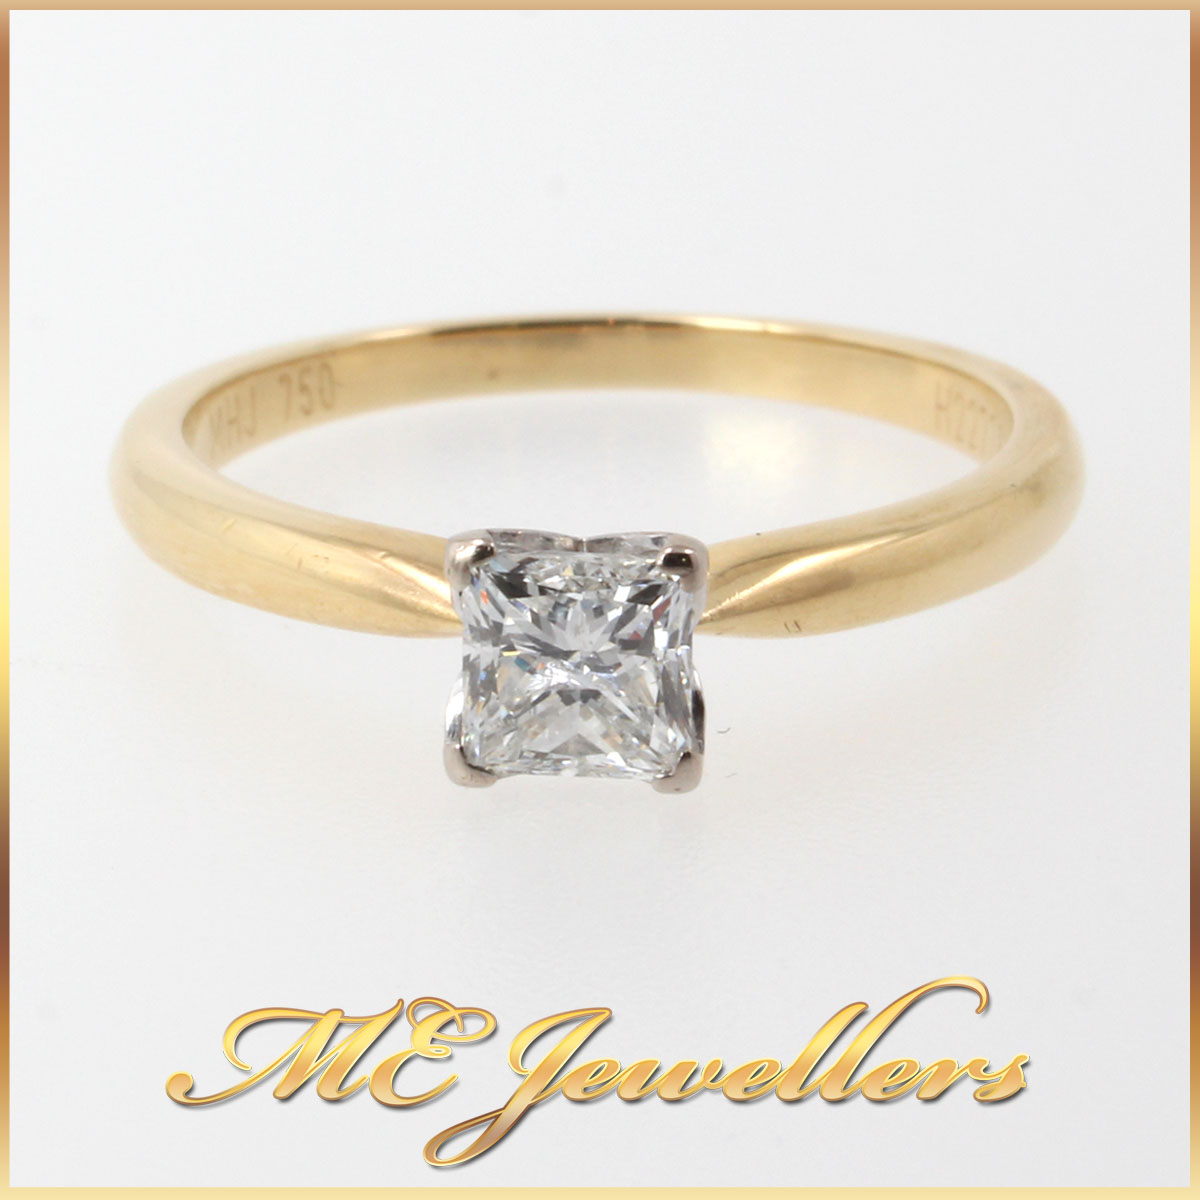 5116_ 0.50ct Solitaire Diamond Engagement Ring 18k 18ct 750 Yellow Gold Size M (5)